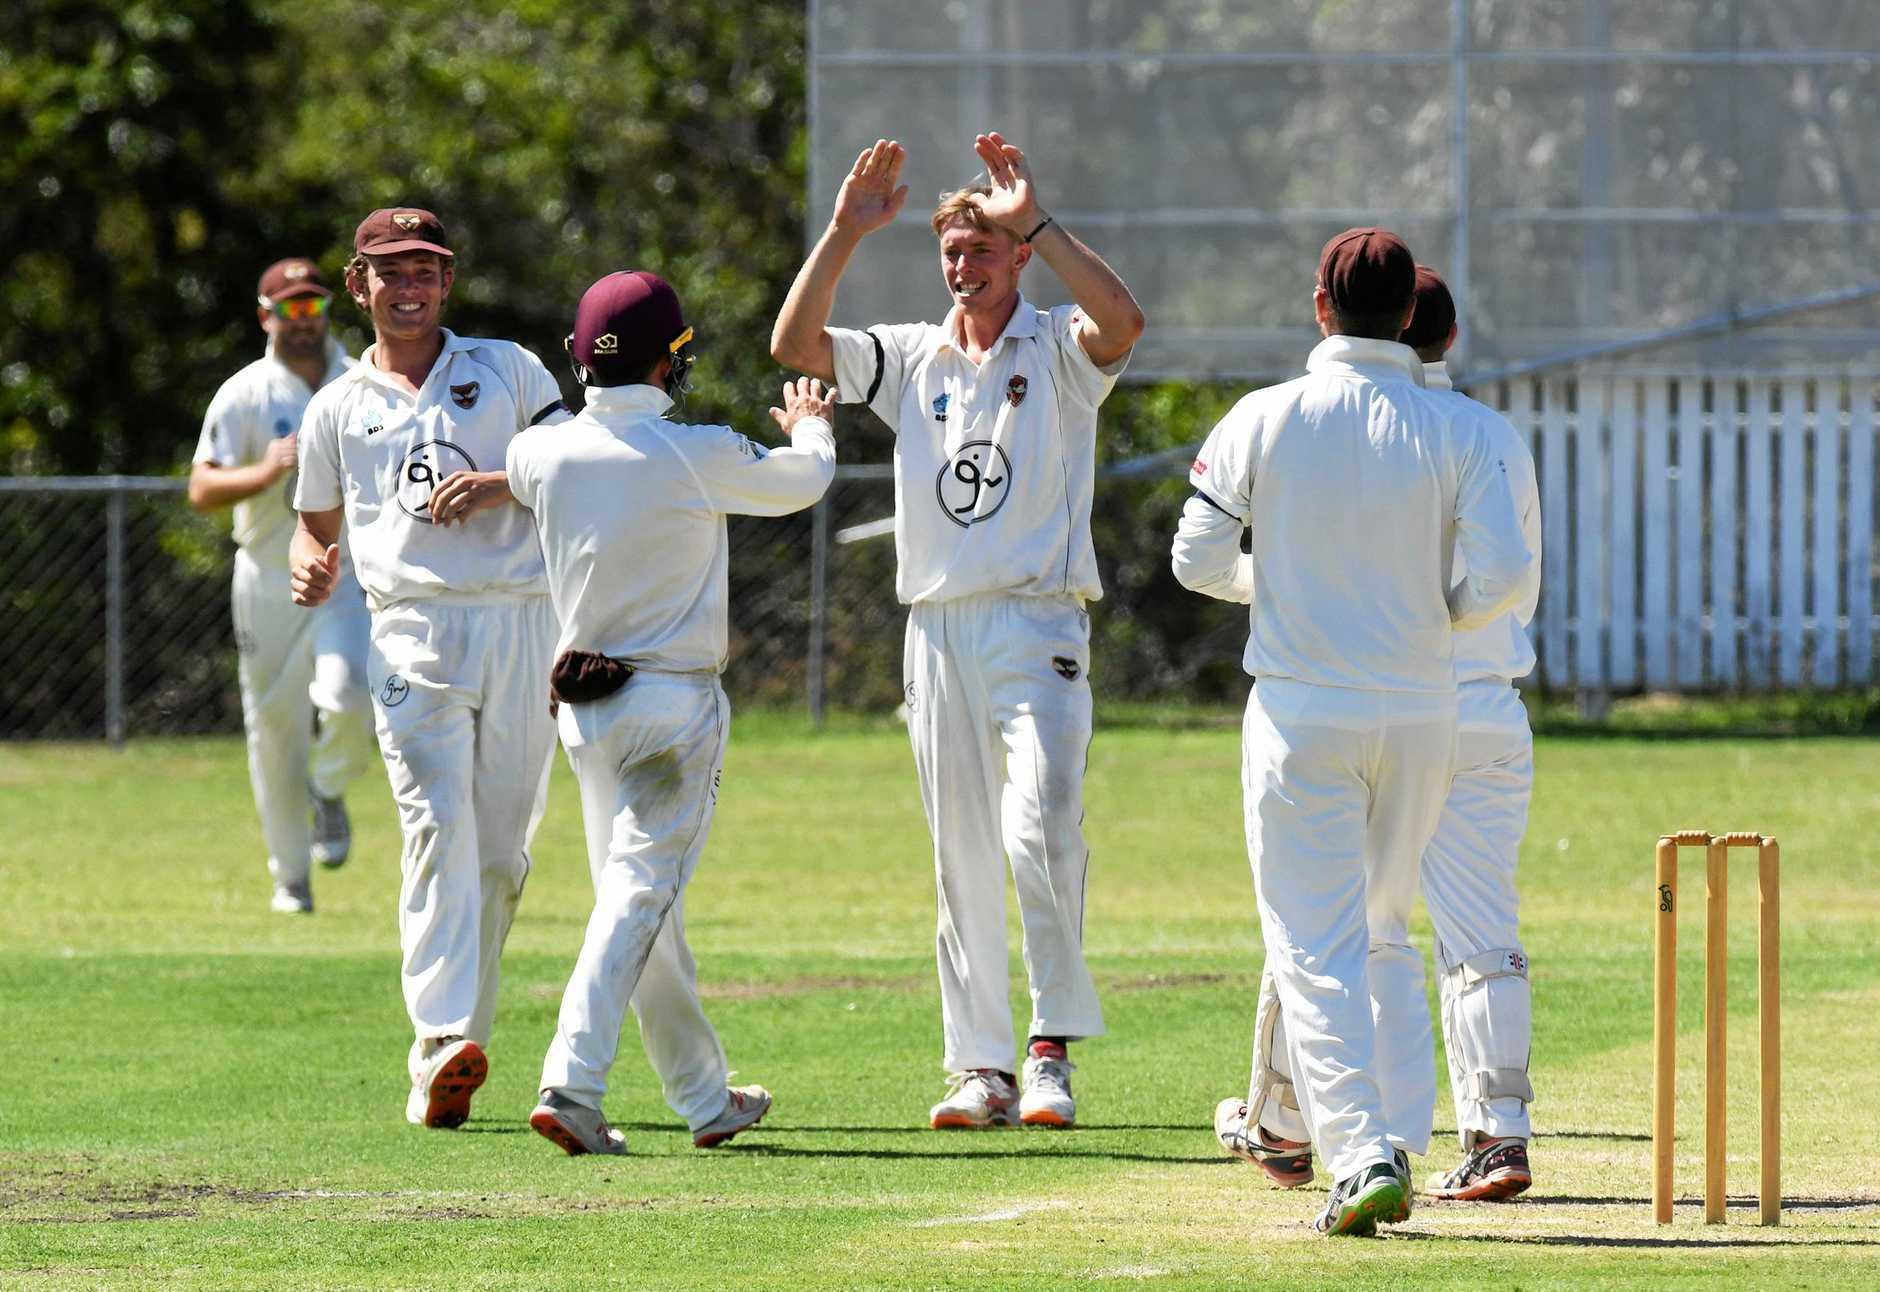 Ipswich Hornets V Sunshine Coast played at Baxter Oval on Saturday. Jack Wood celebrates a wicket.